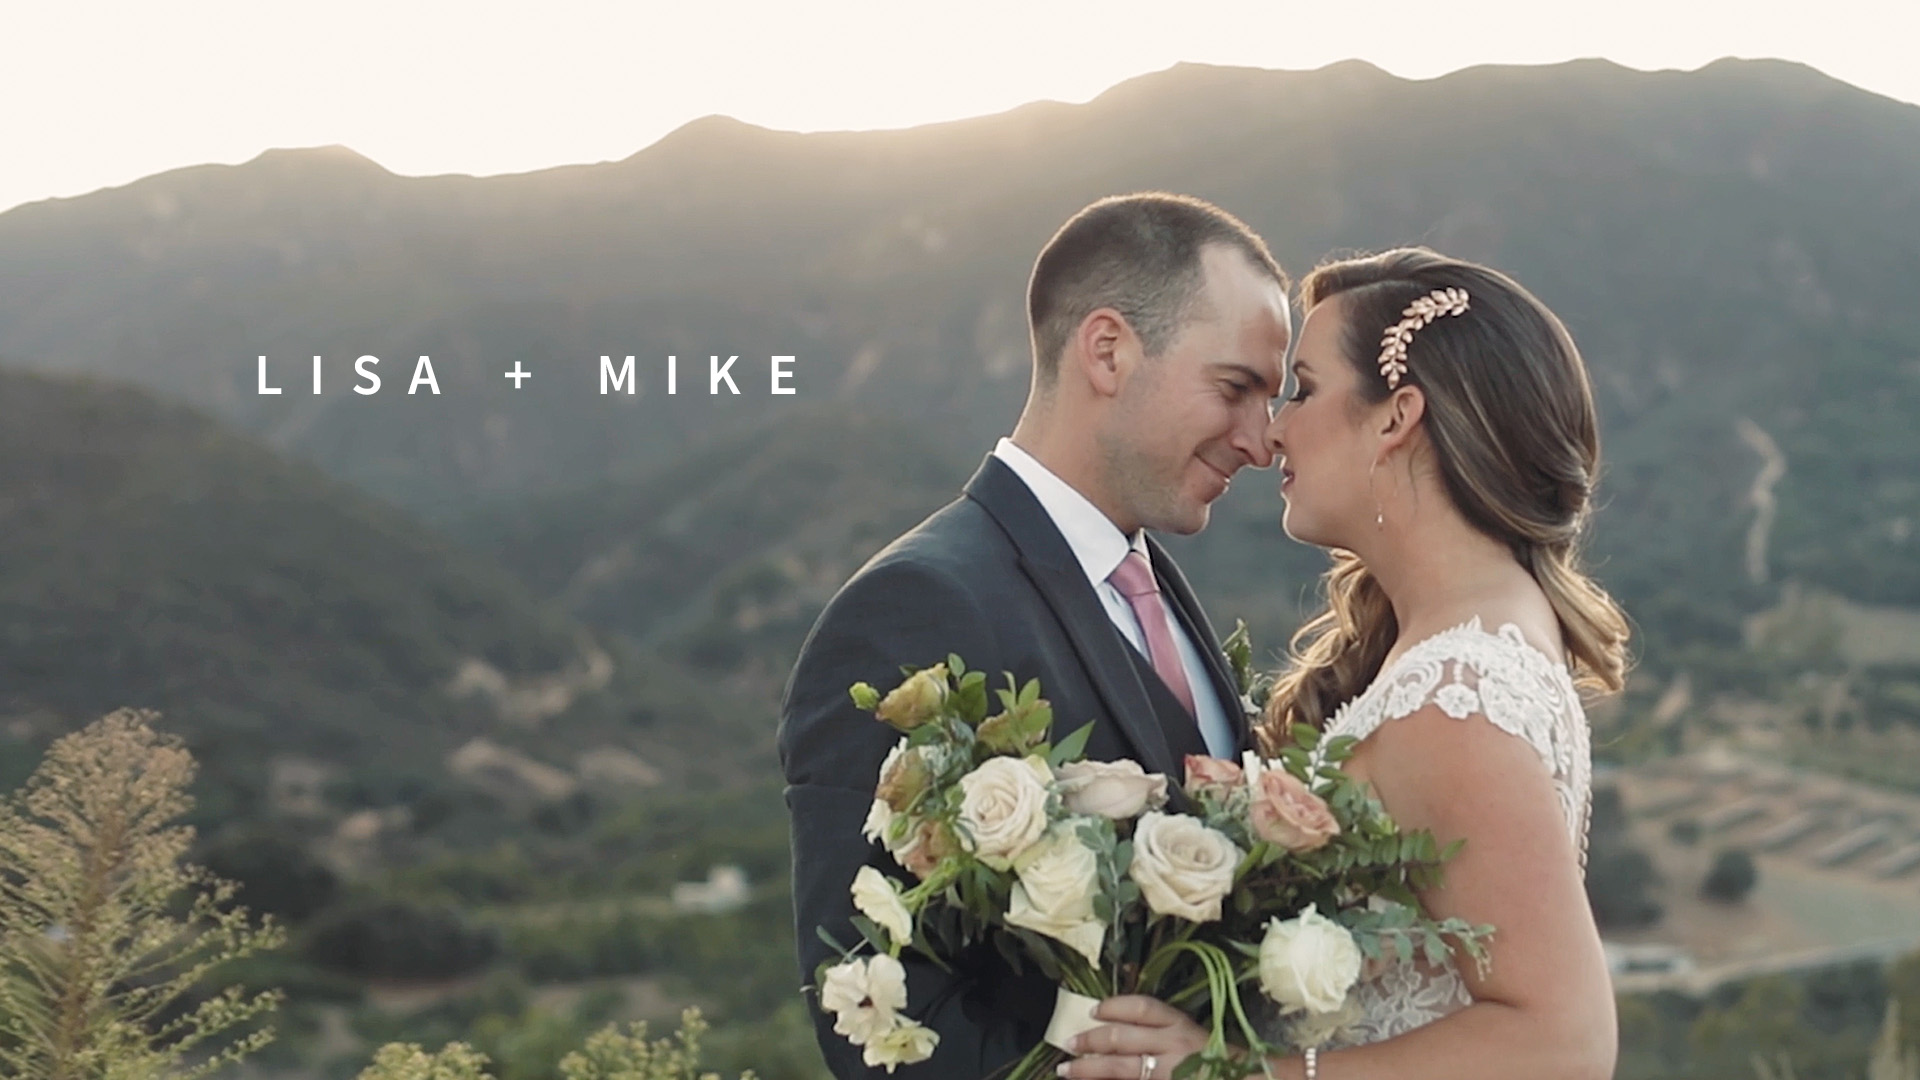 Lisa + Mike | Fallbrook, California | Circle Oak Ranch